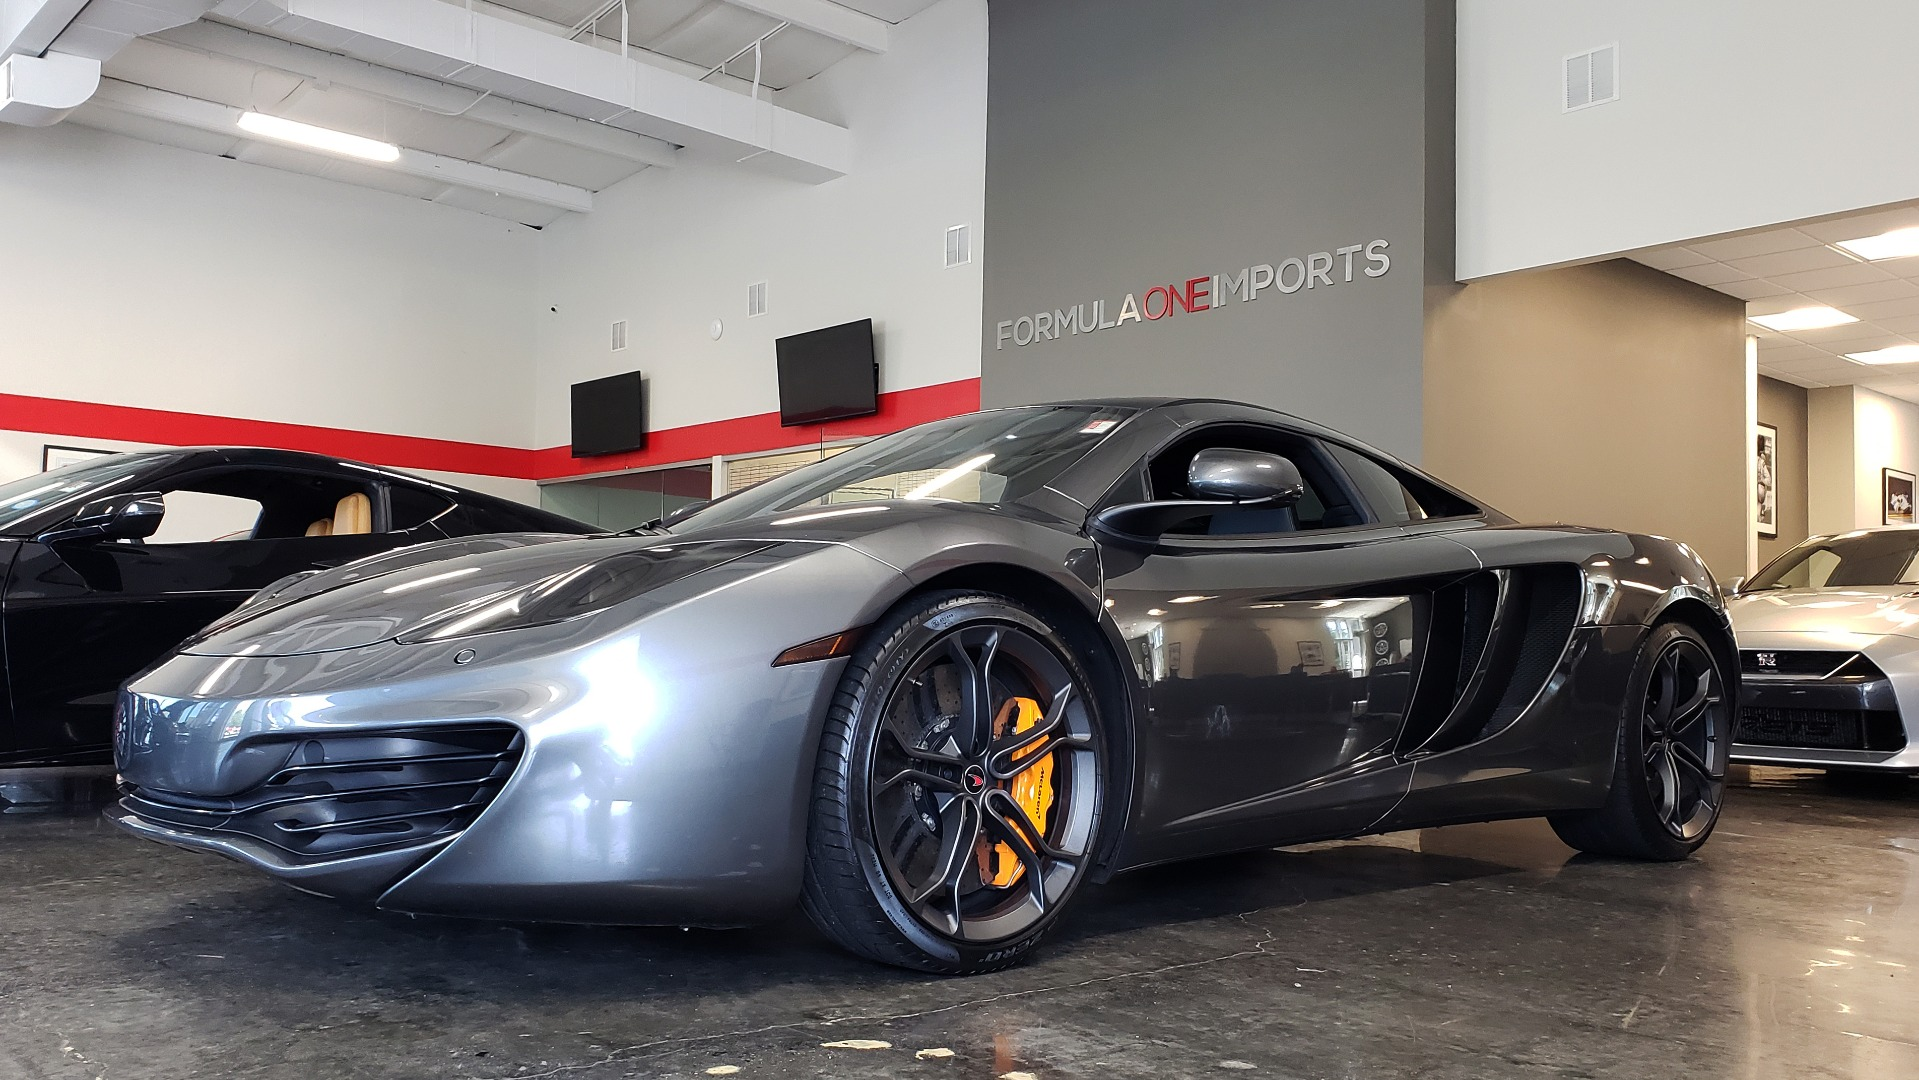 Used 2012 McLaren MP4-12C COUPE / 3.8 L V8 592HP / AUTO / NAV / CCB / LOW MILES for sale Sold at Formula Imports in Charlotte NC 28227 90